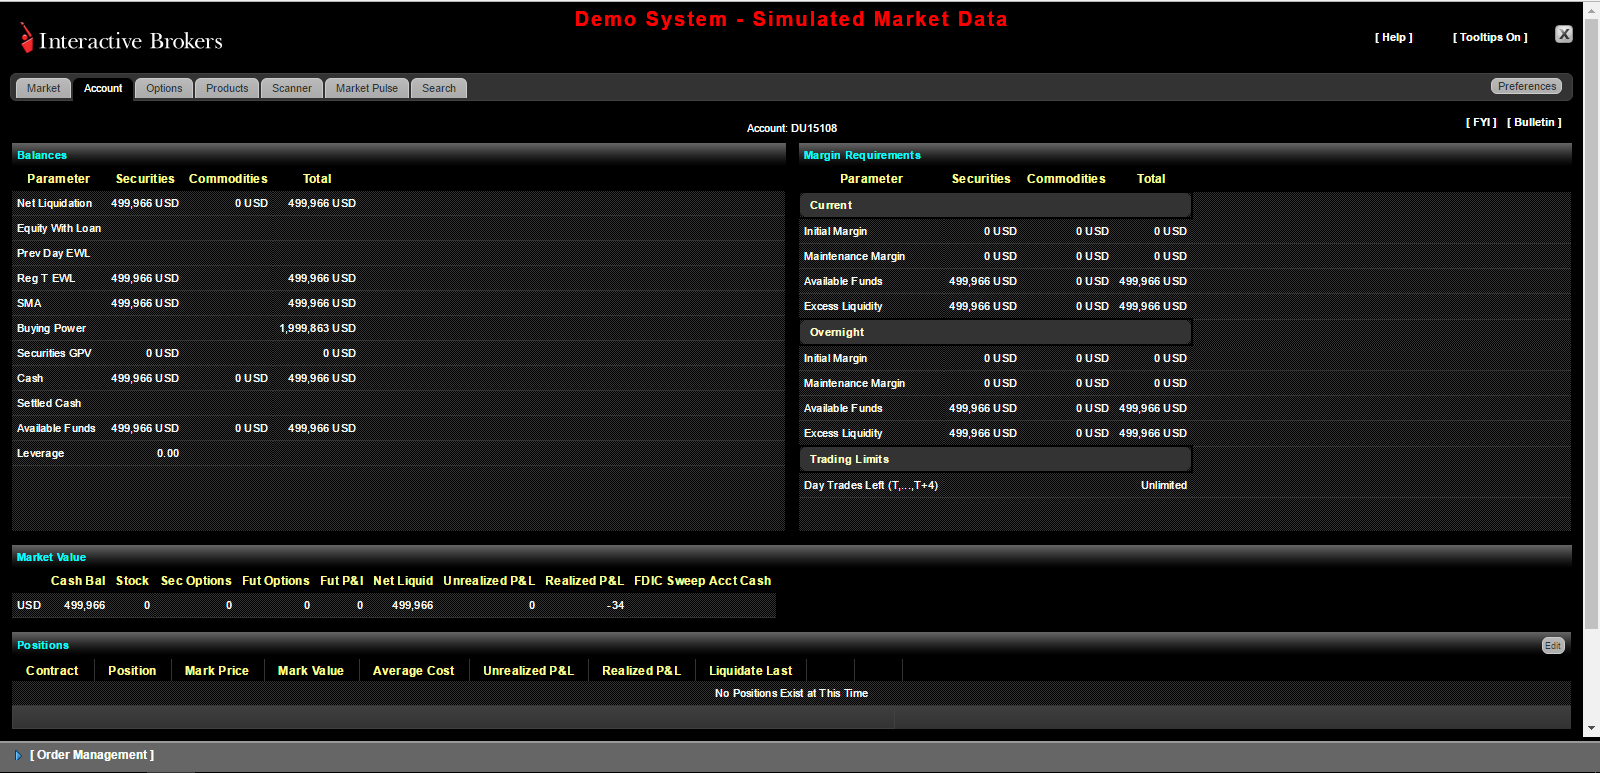 One of the Best CFD Trading Platforms: A Screenshot of the Web Platform of Interactive Brokers